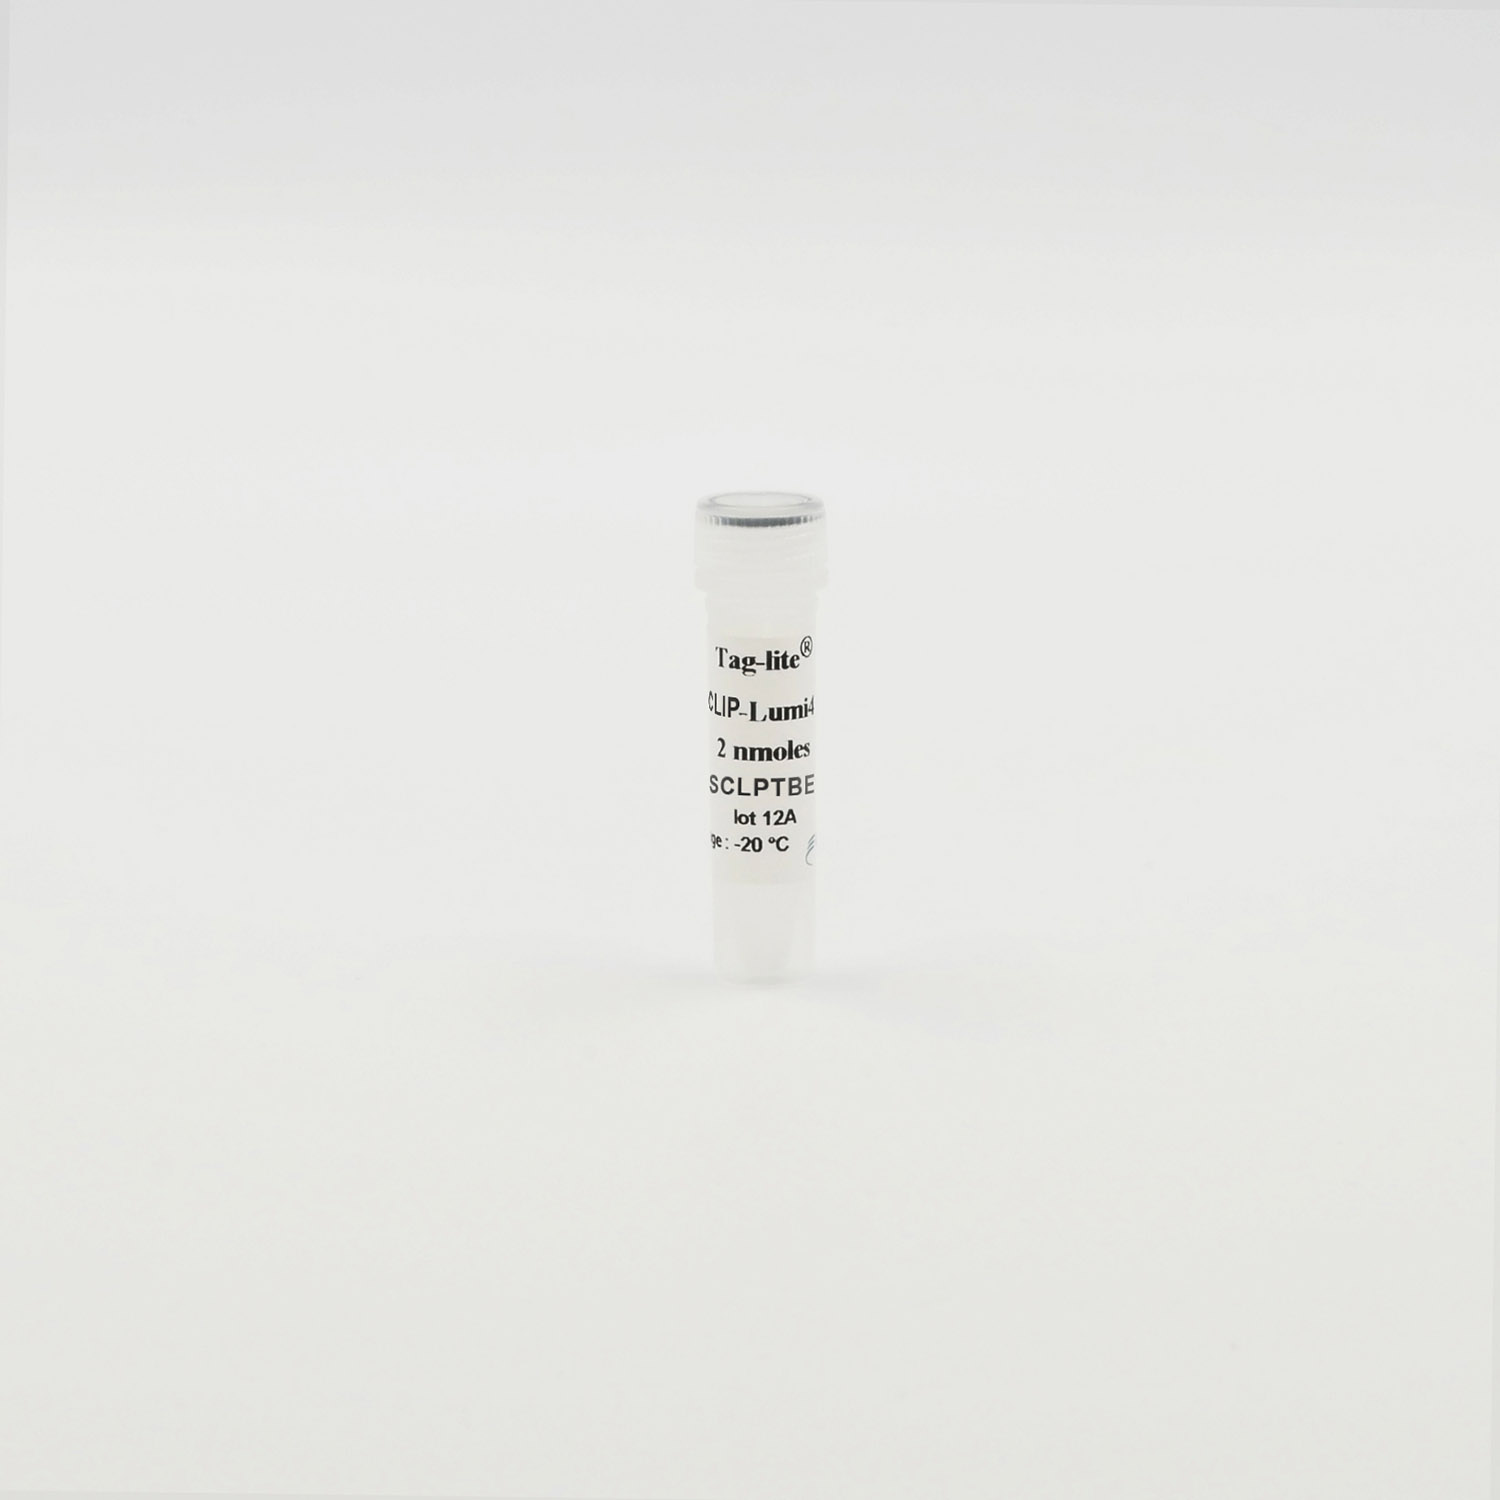 Photography of CLIP-Lumi-Tb vial